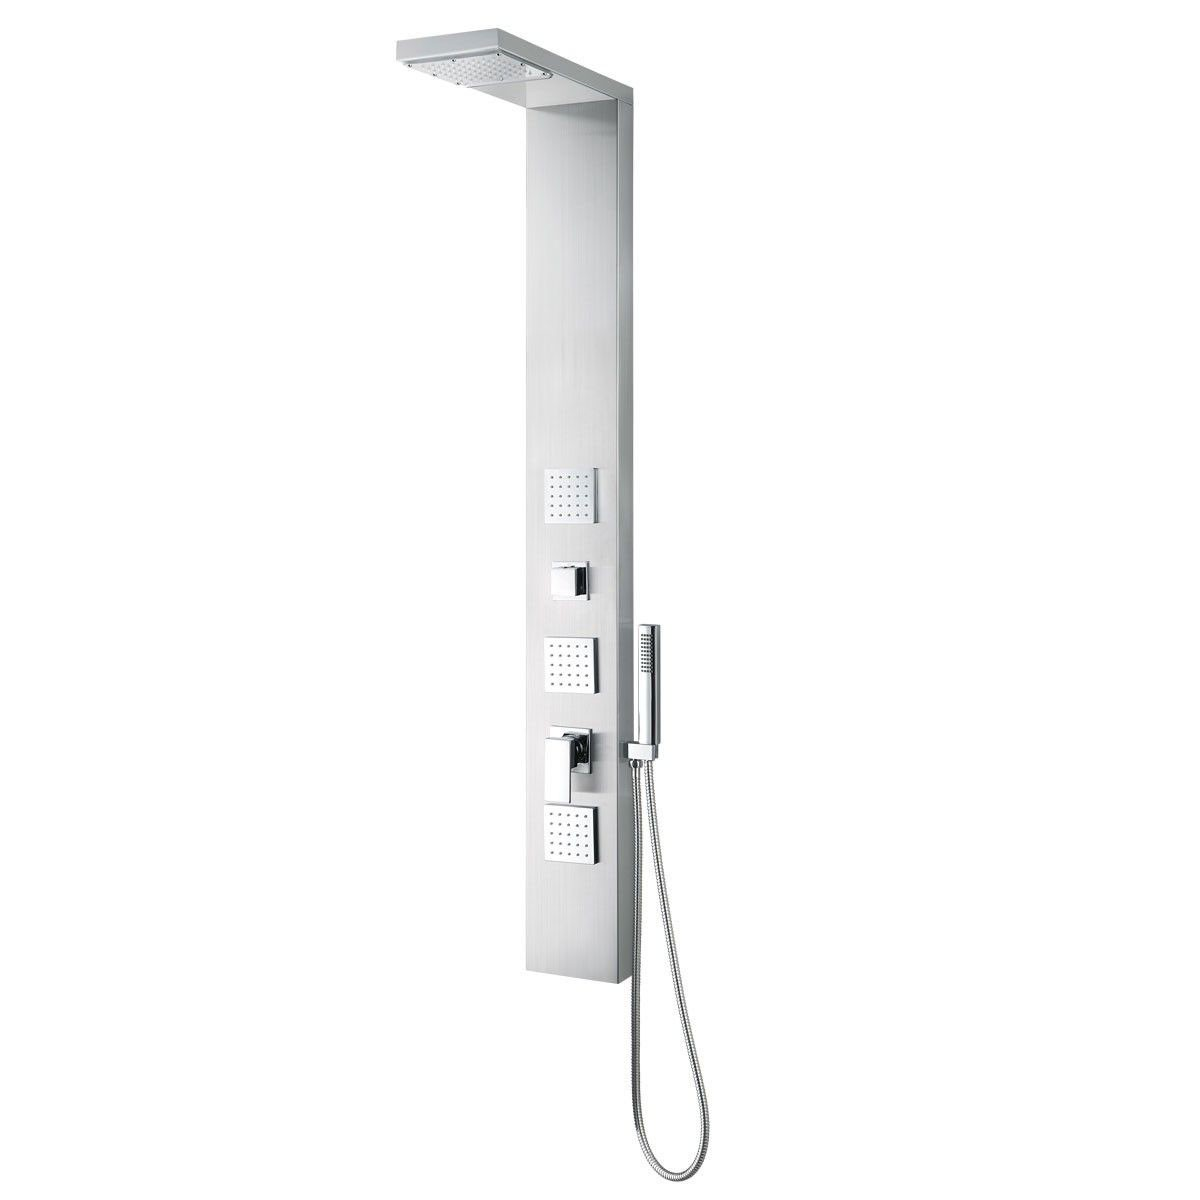 Brushed Stainless Steel Thermostatic Shower Panel System (JX-9851)